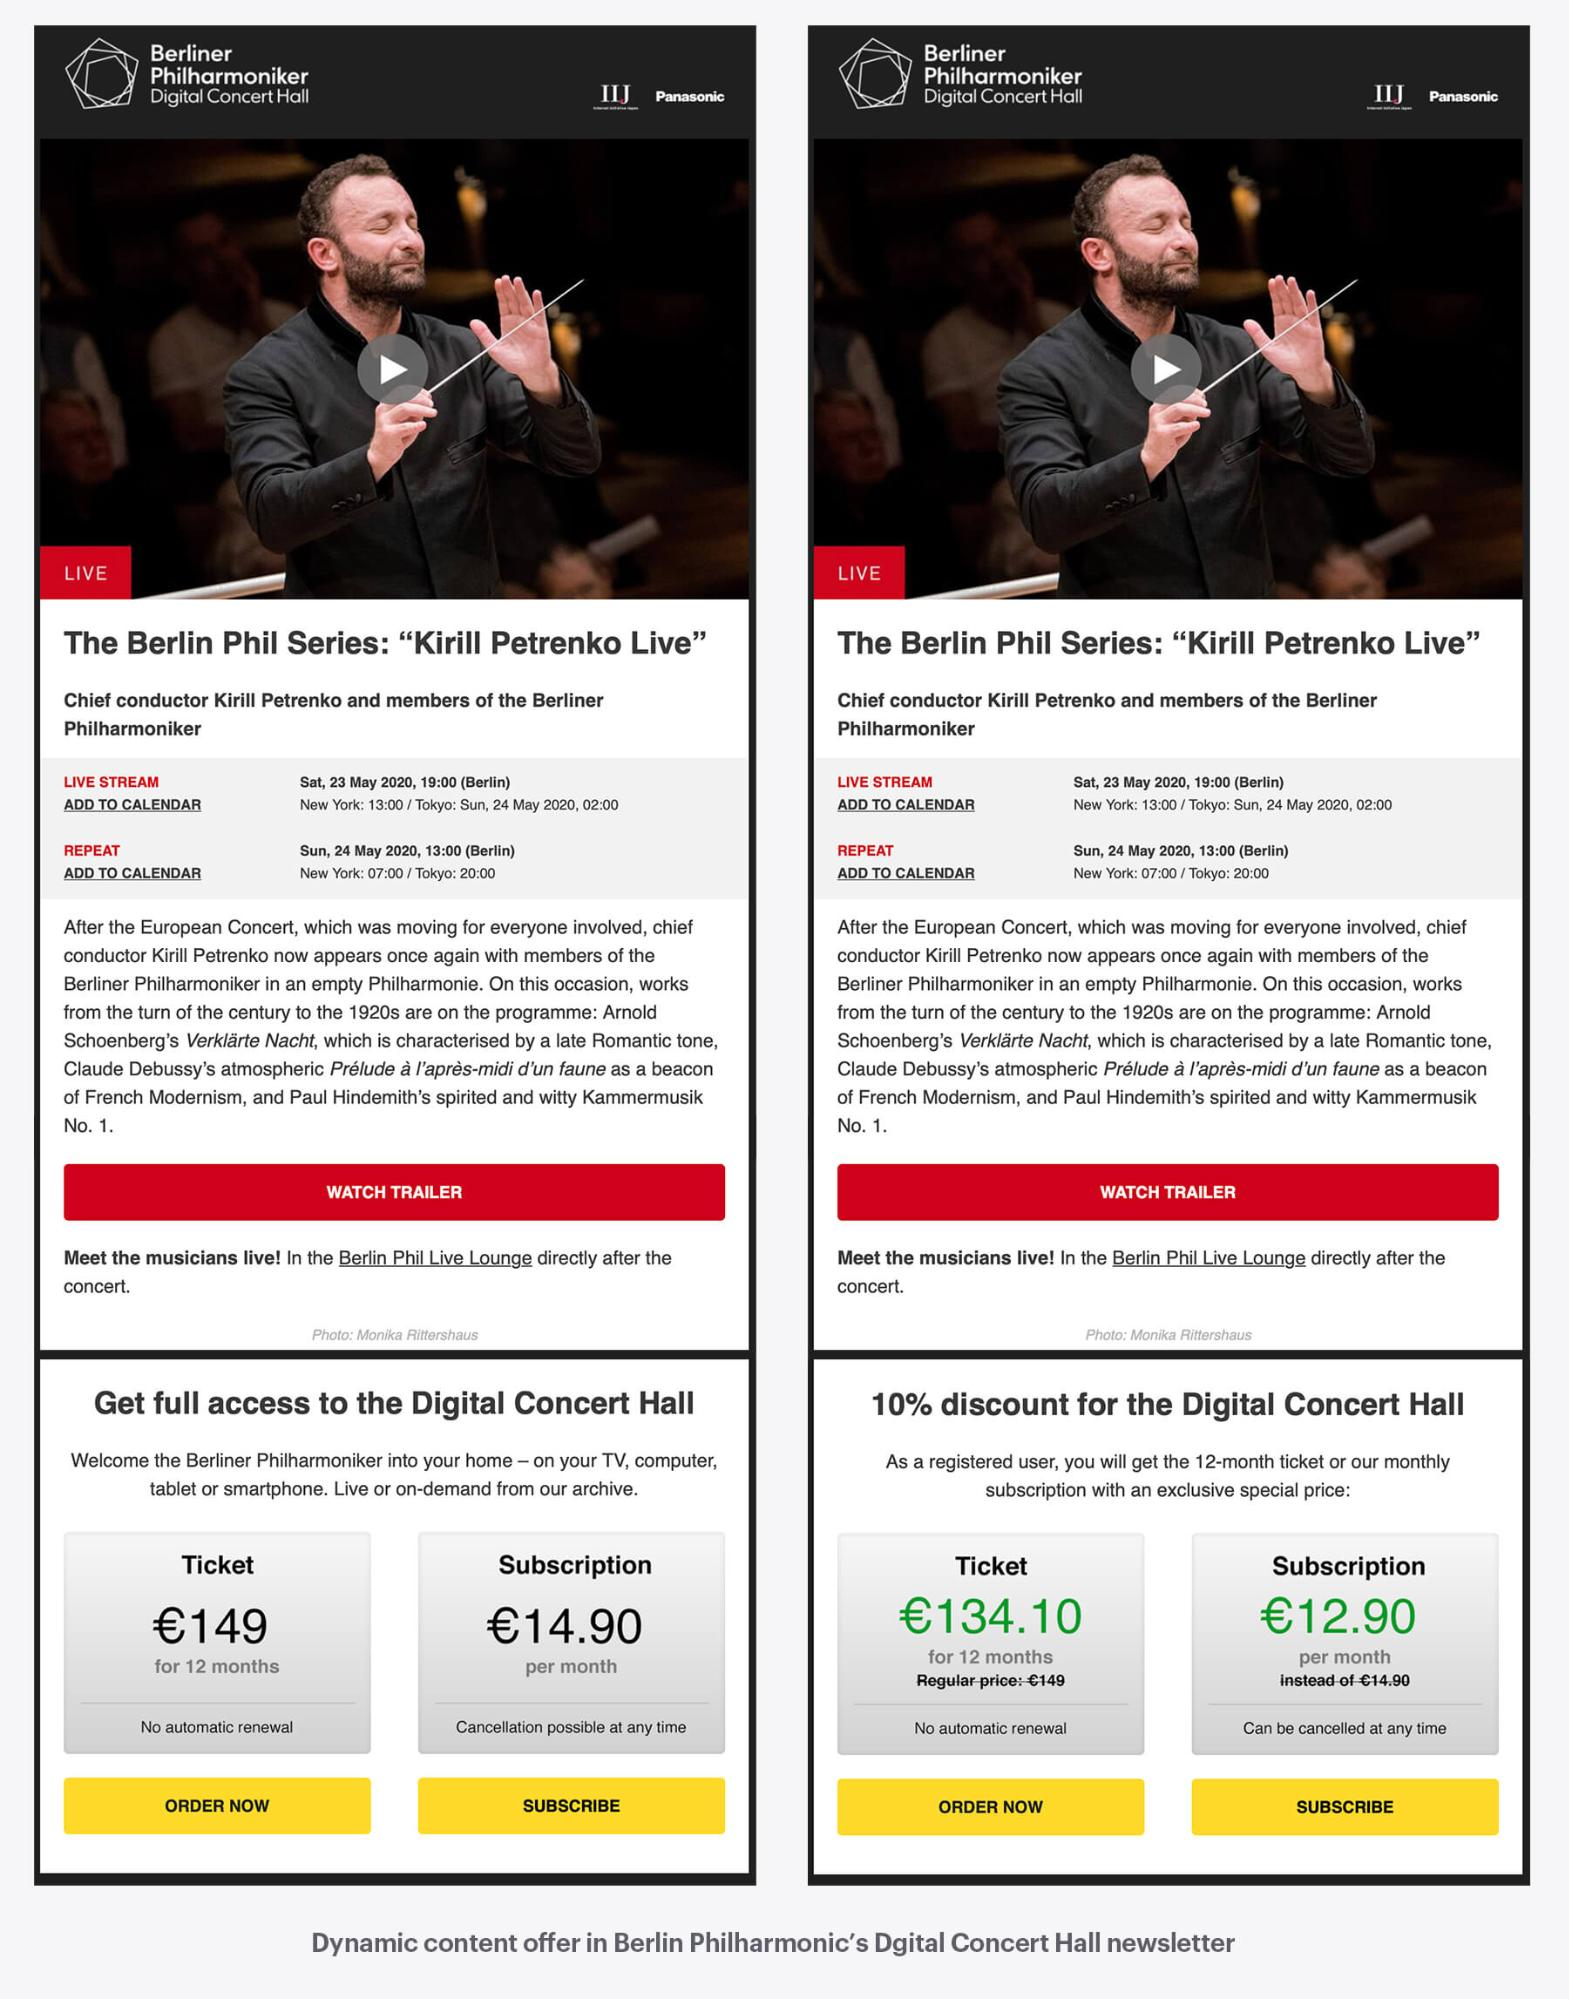 The Berlin Philharmonic uses dynamic content to present the right offer to the right group.